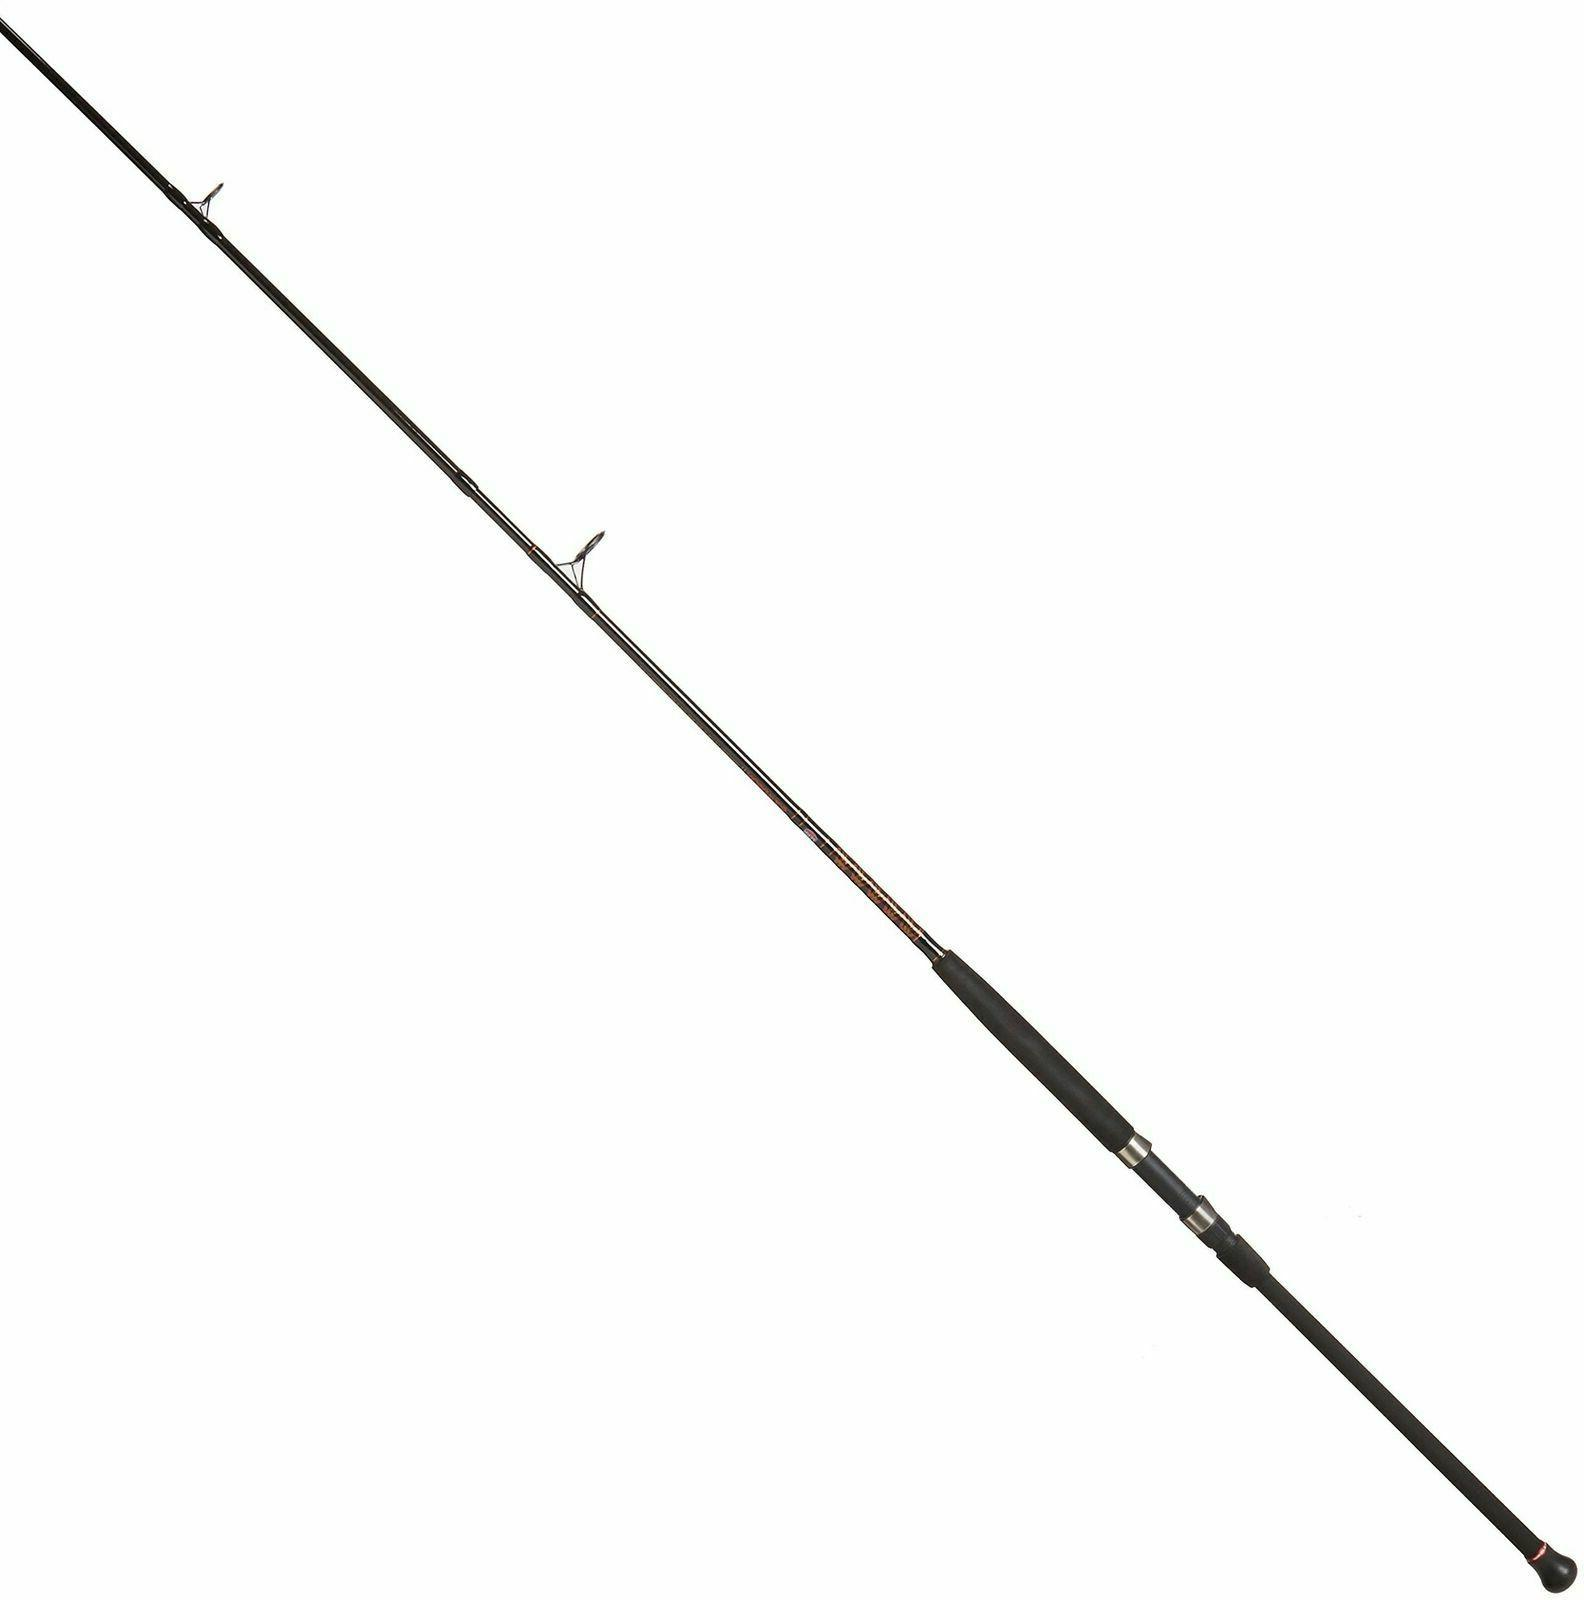 Penn Spinning Fishing Rod Premium cork Durable High Quality